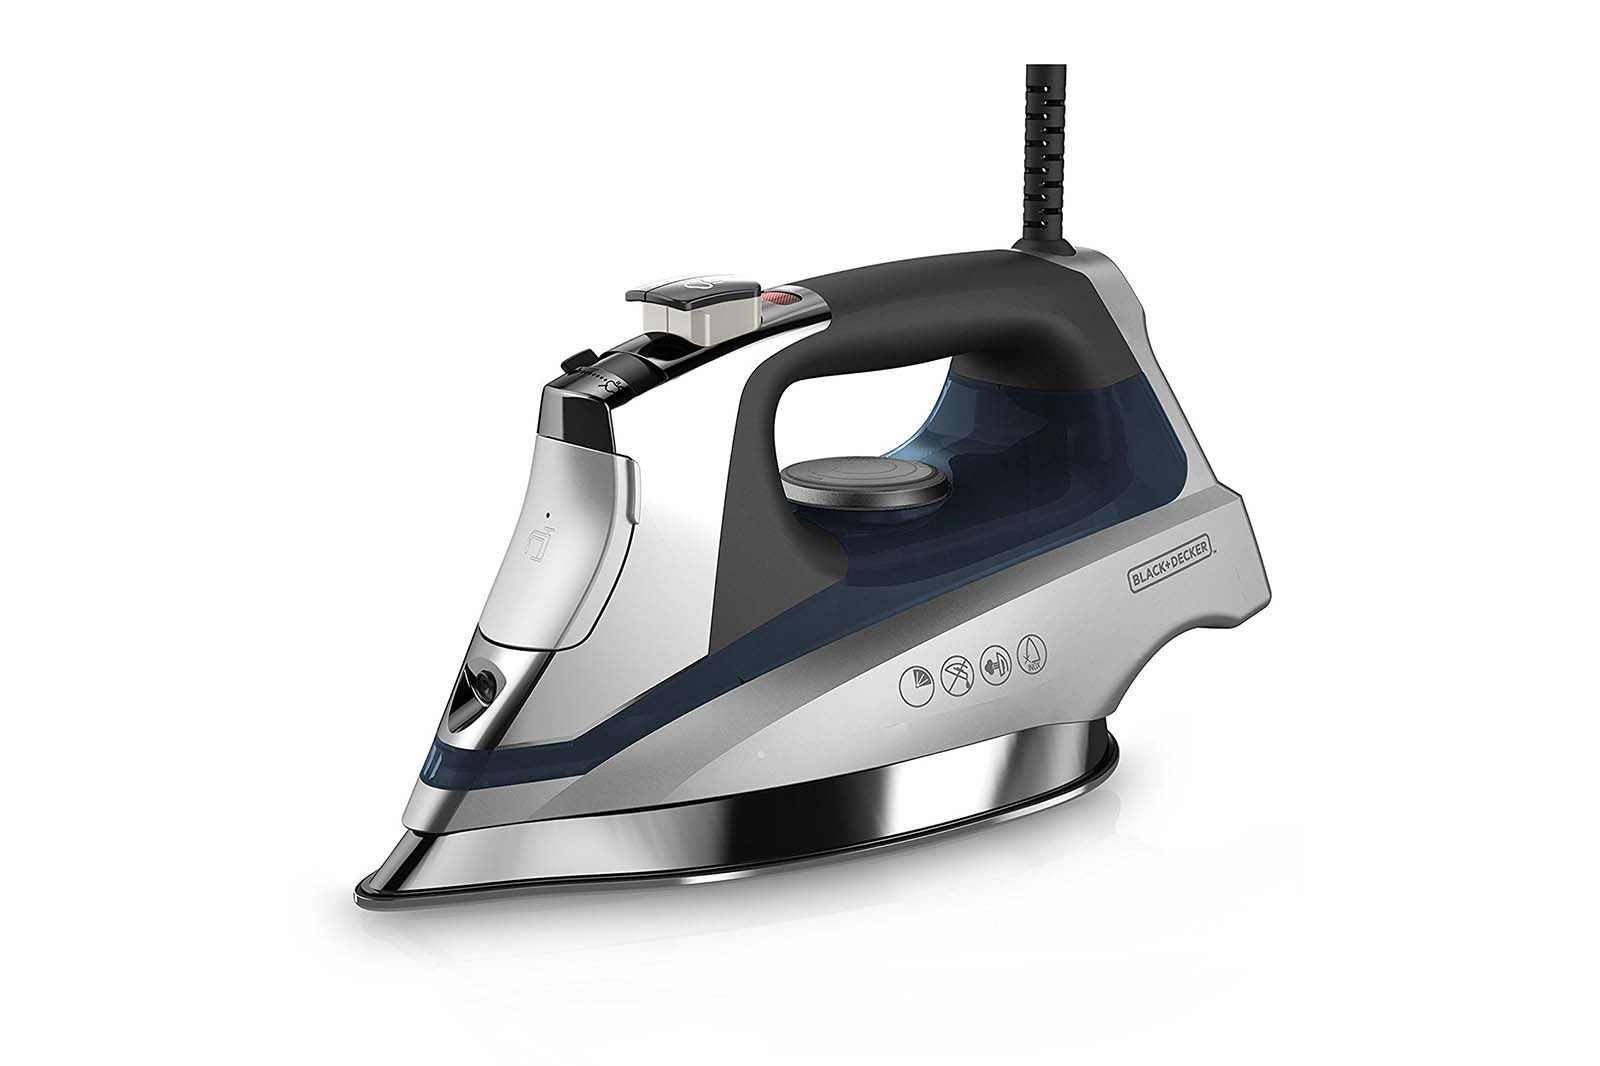 Black+Decker D3030 Allure Iron.